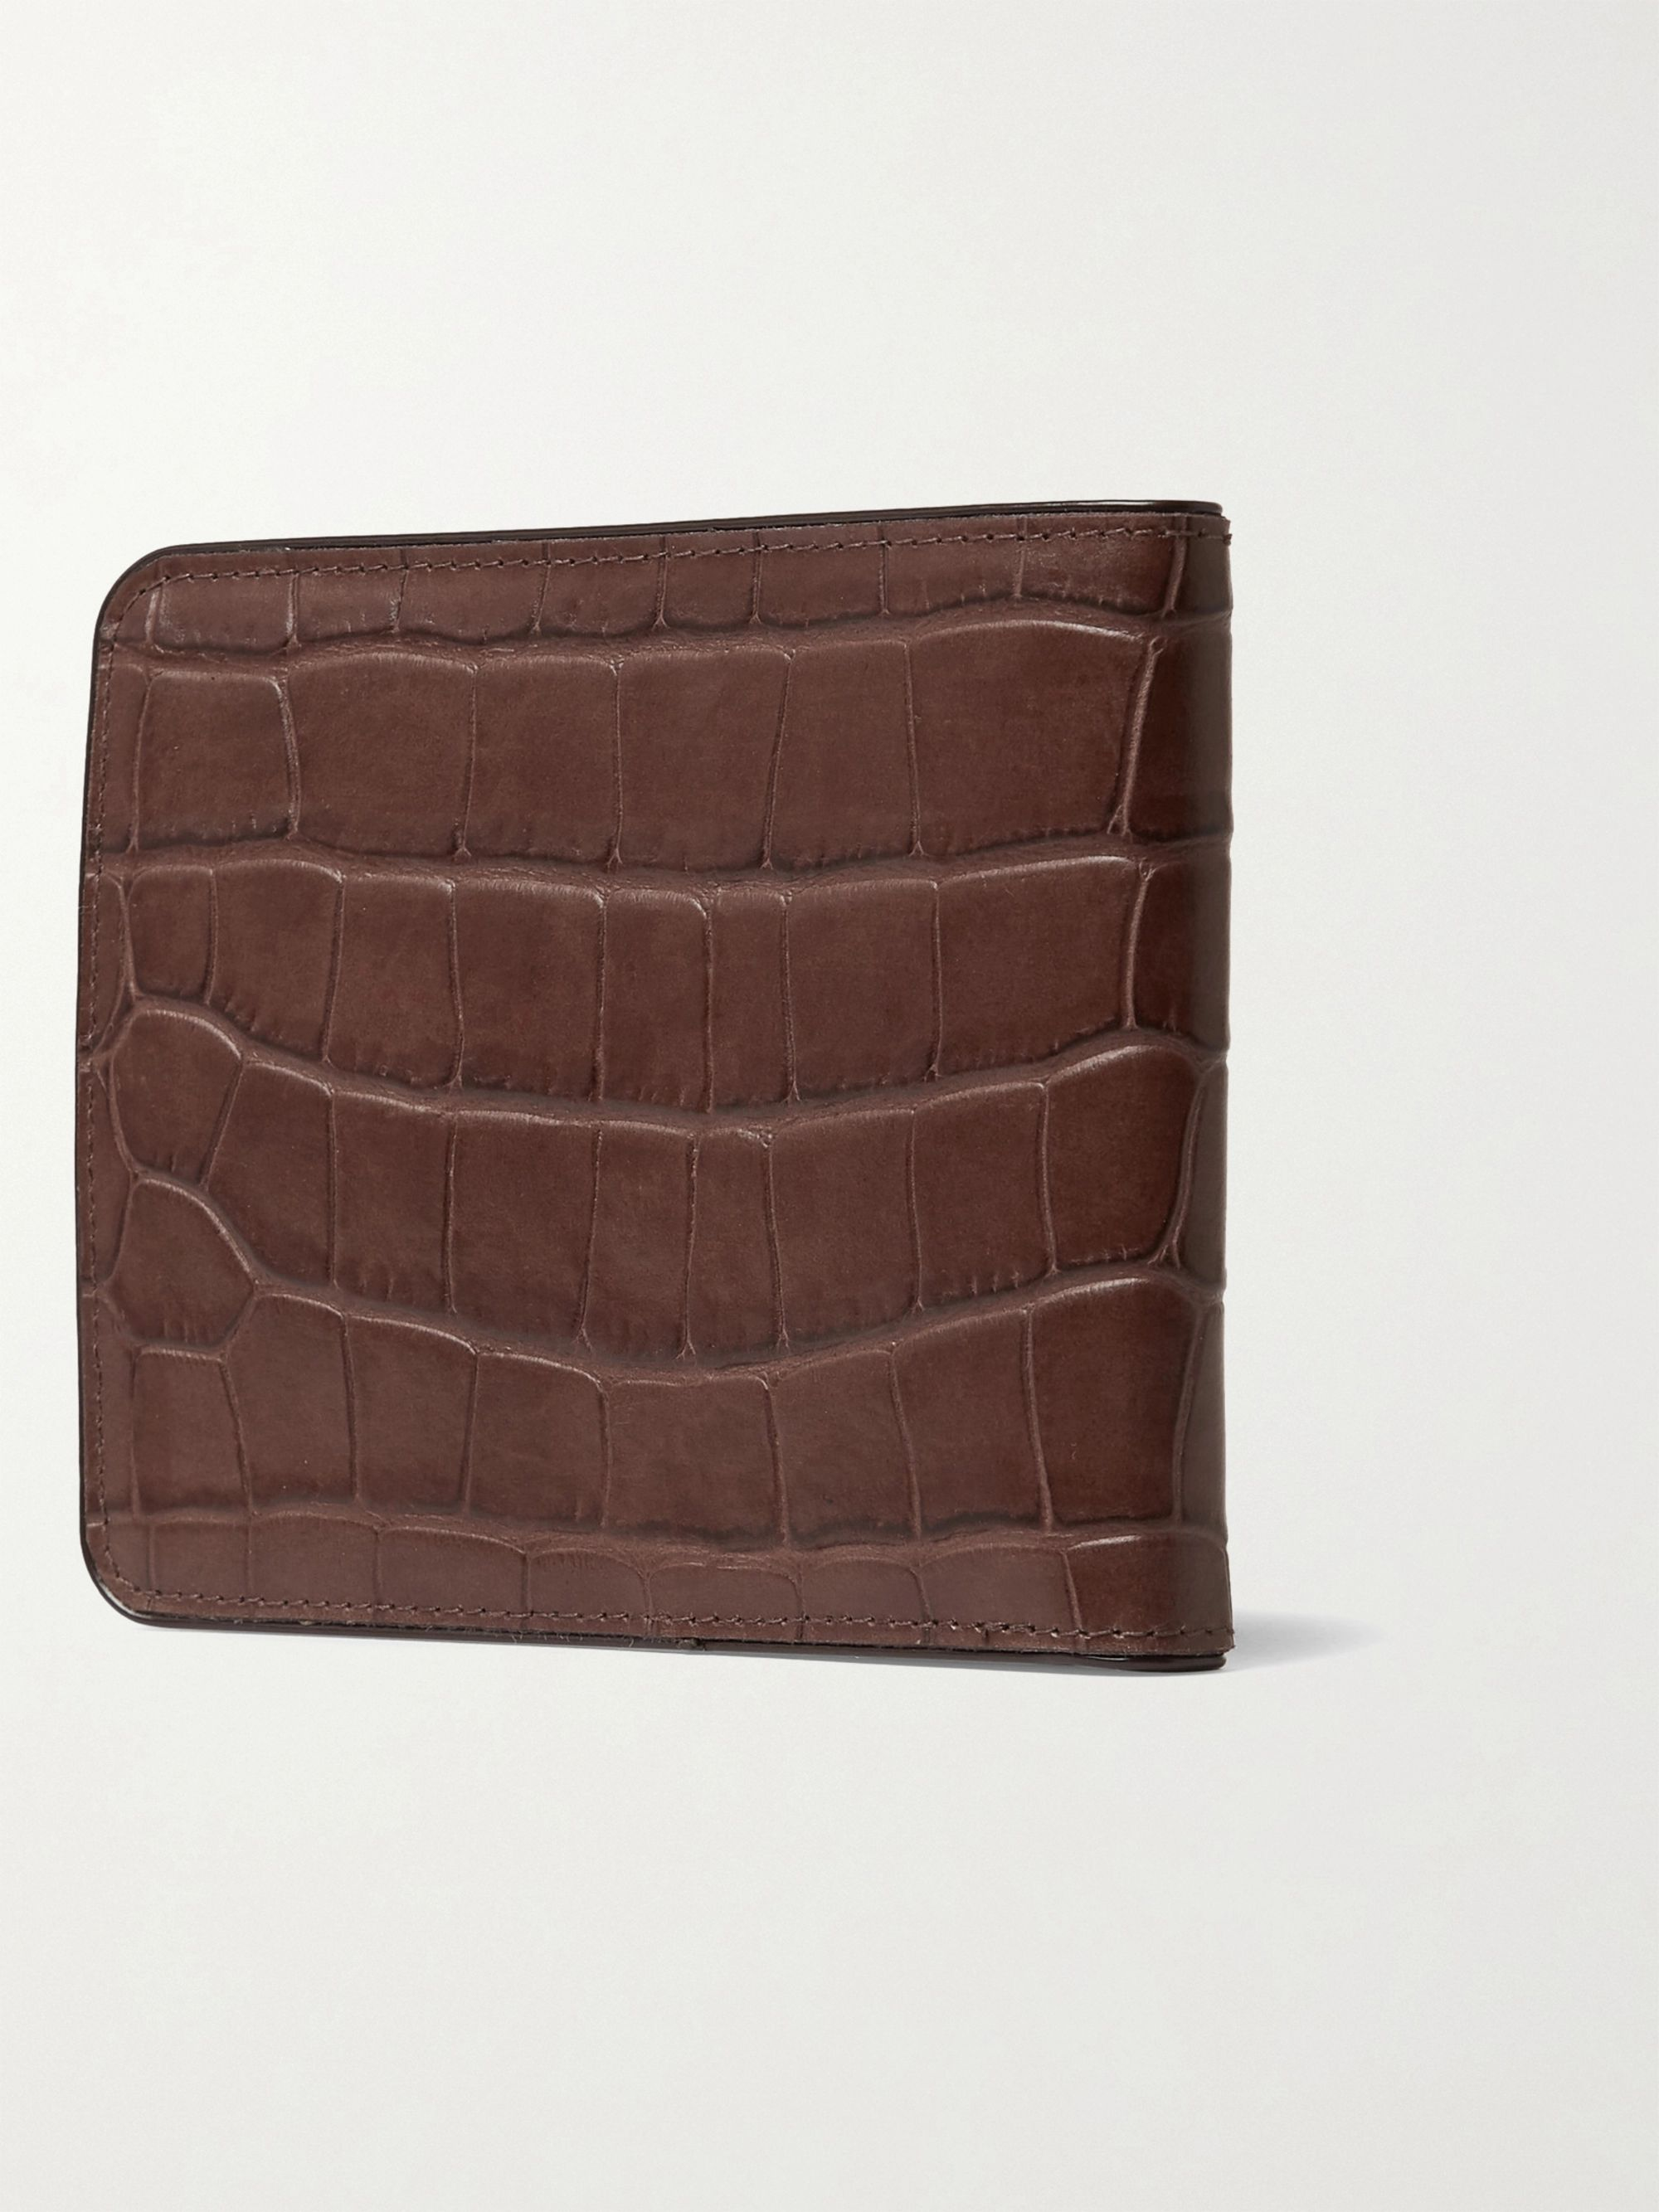 Dries Van Noten Croc-Effect Leather Billfold Wallet